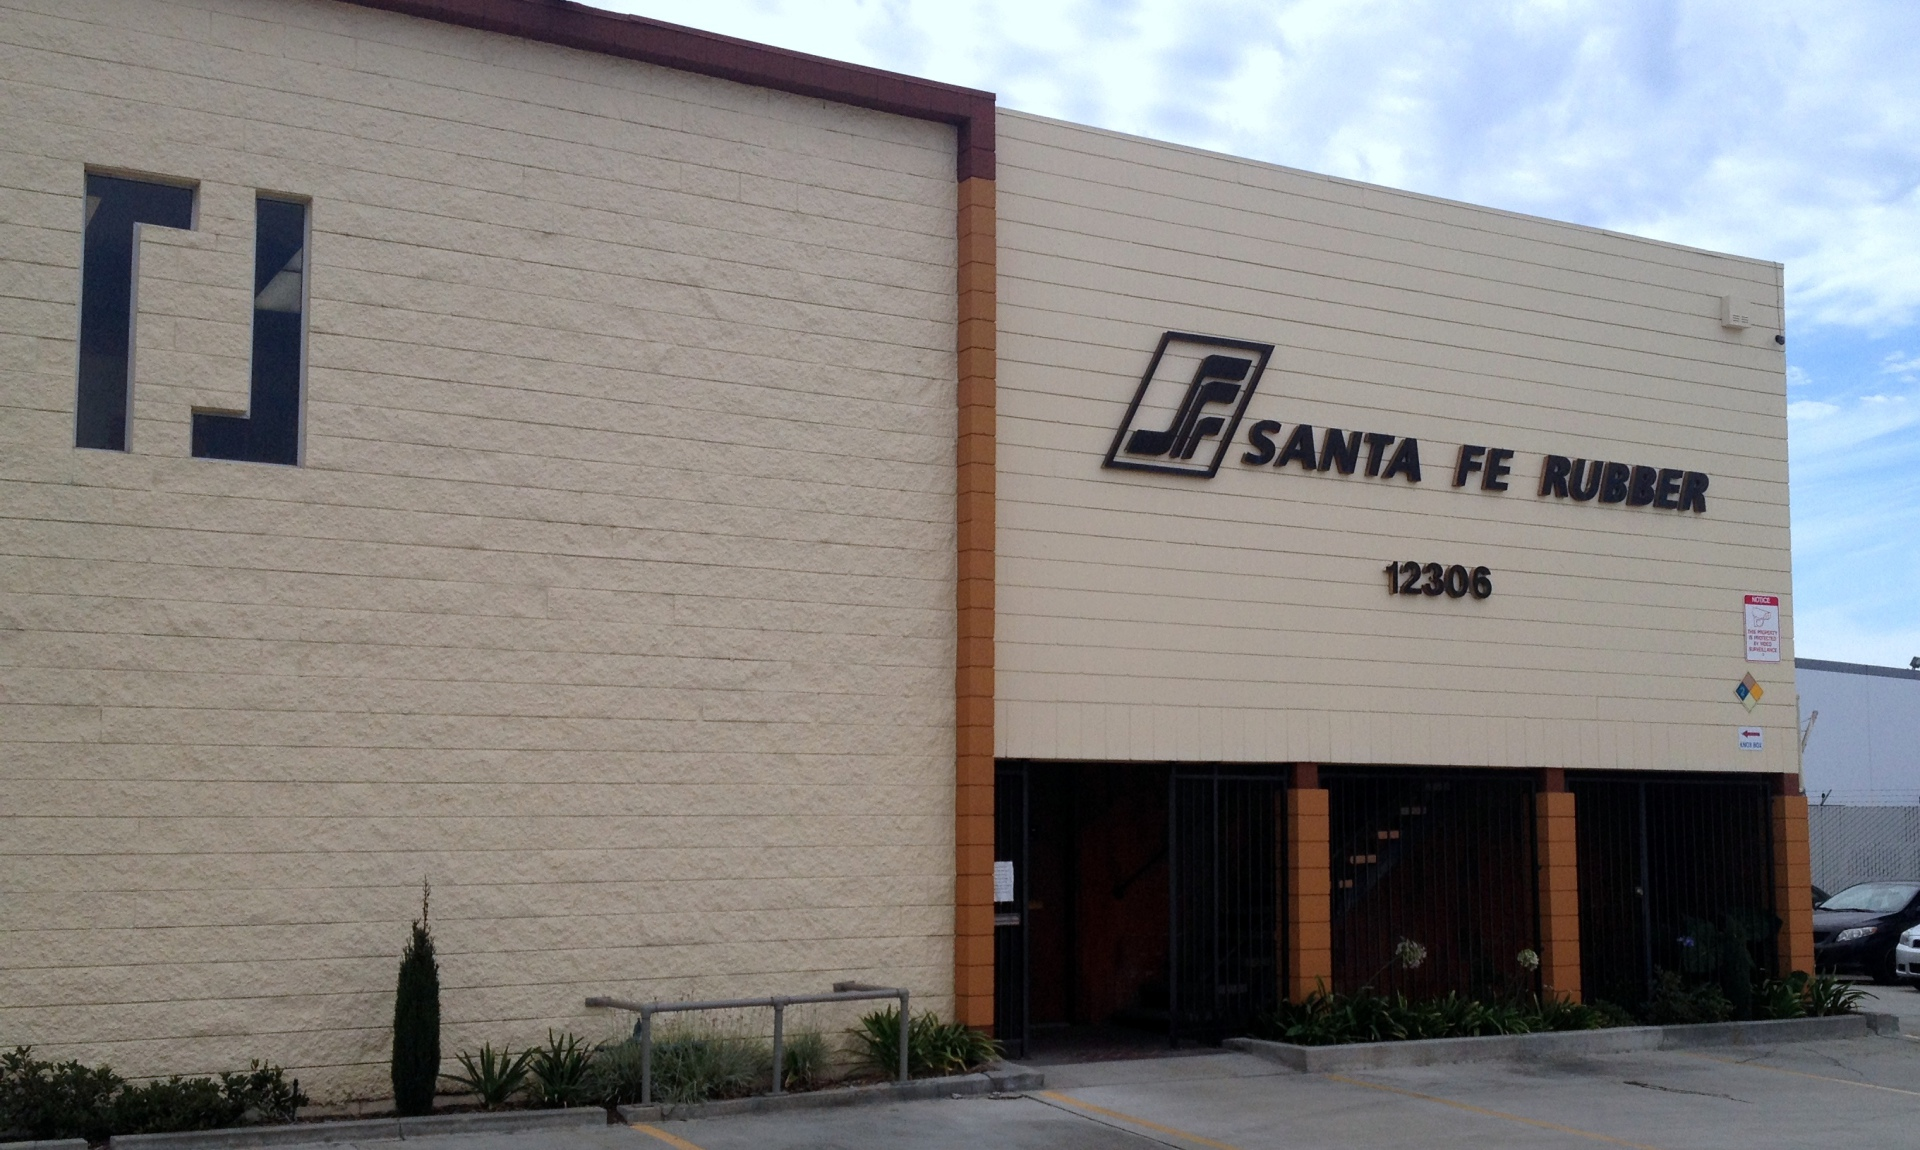 Take A Virtual Tour Of Santa Fe Rubber Products, Inc.